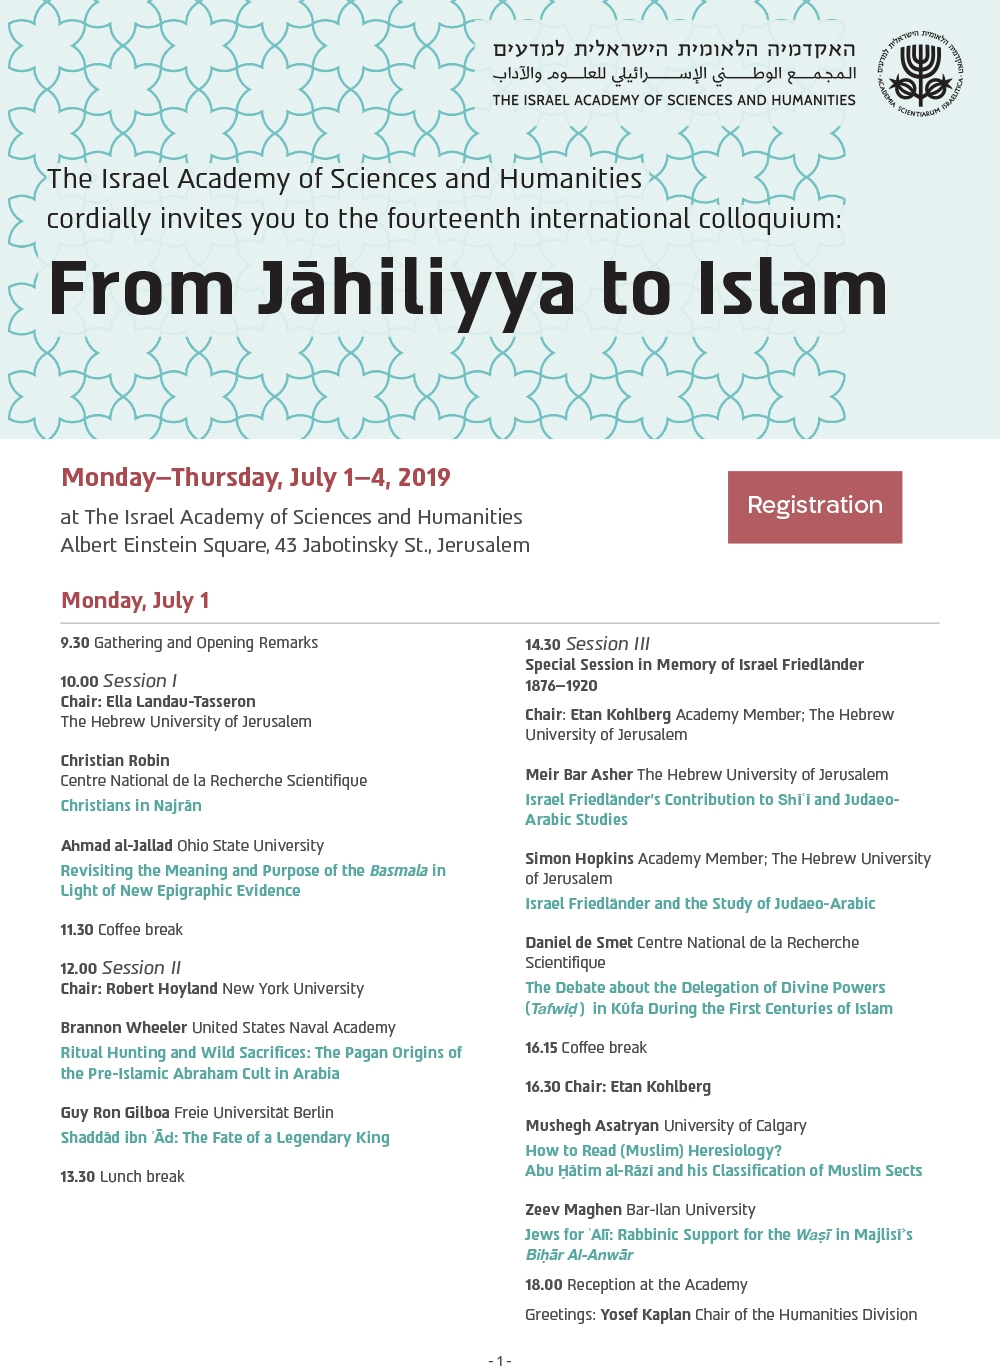 The fourteenth international colloquium From Jahiliyya to Islam